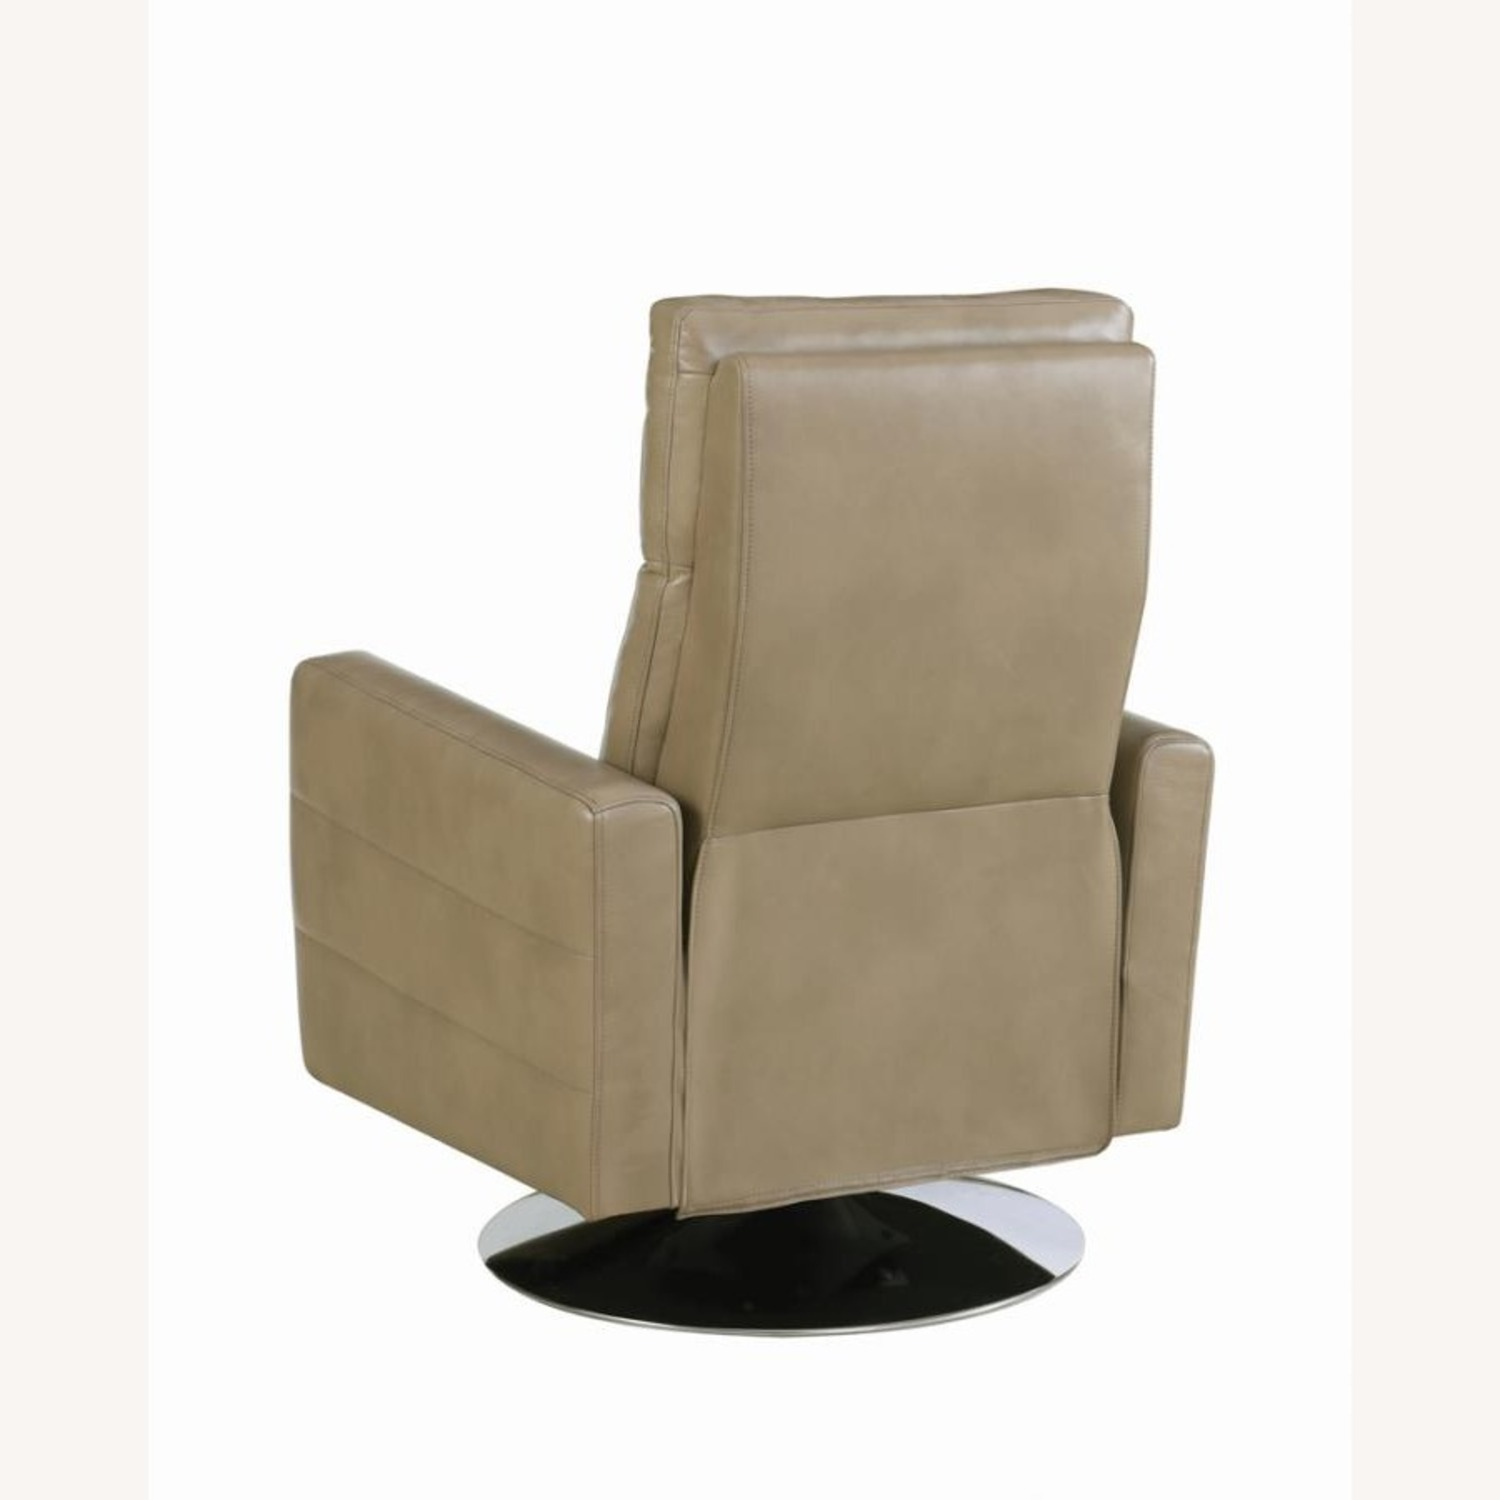 Swivel Recliner Upholstered In Taupe Performance - image-4